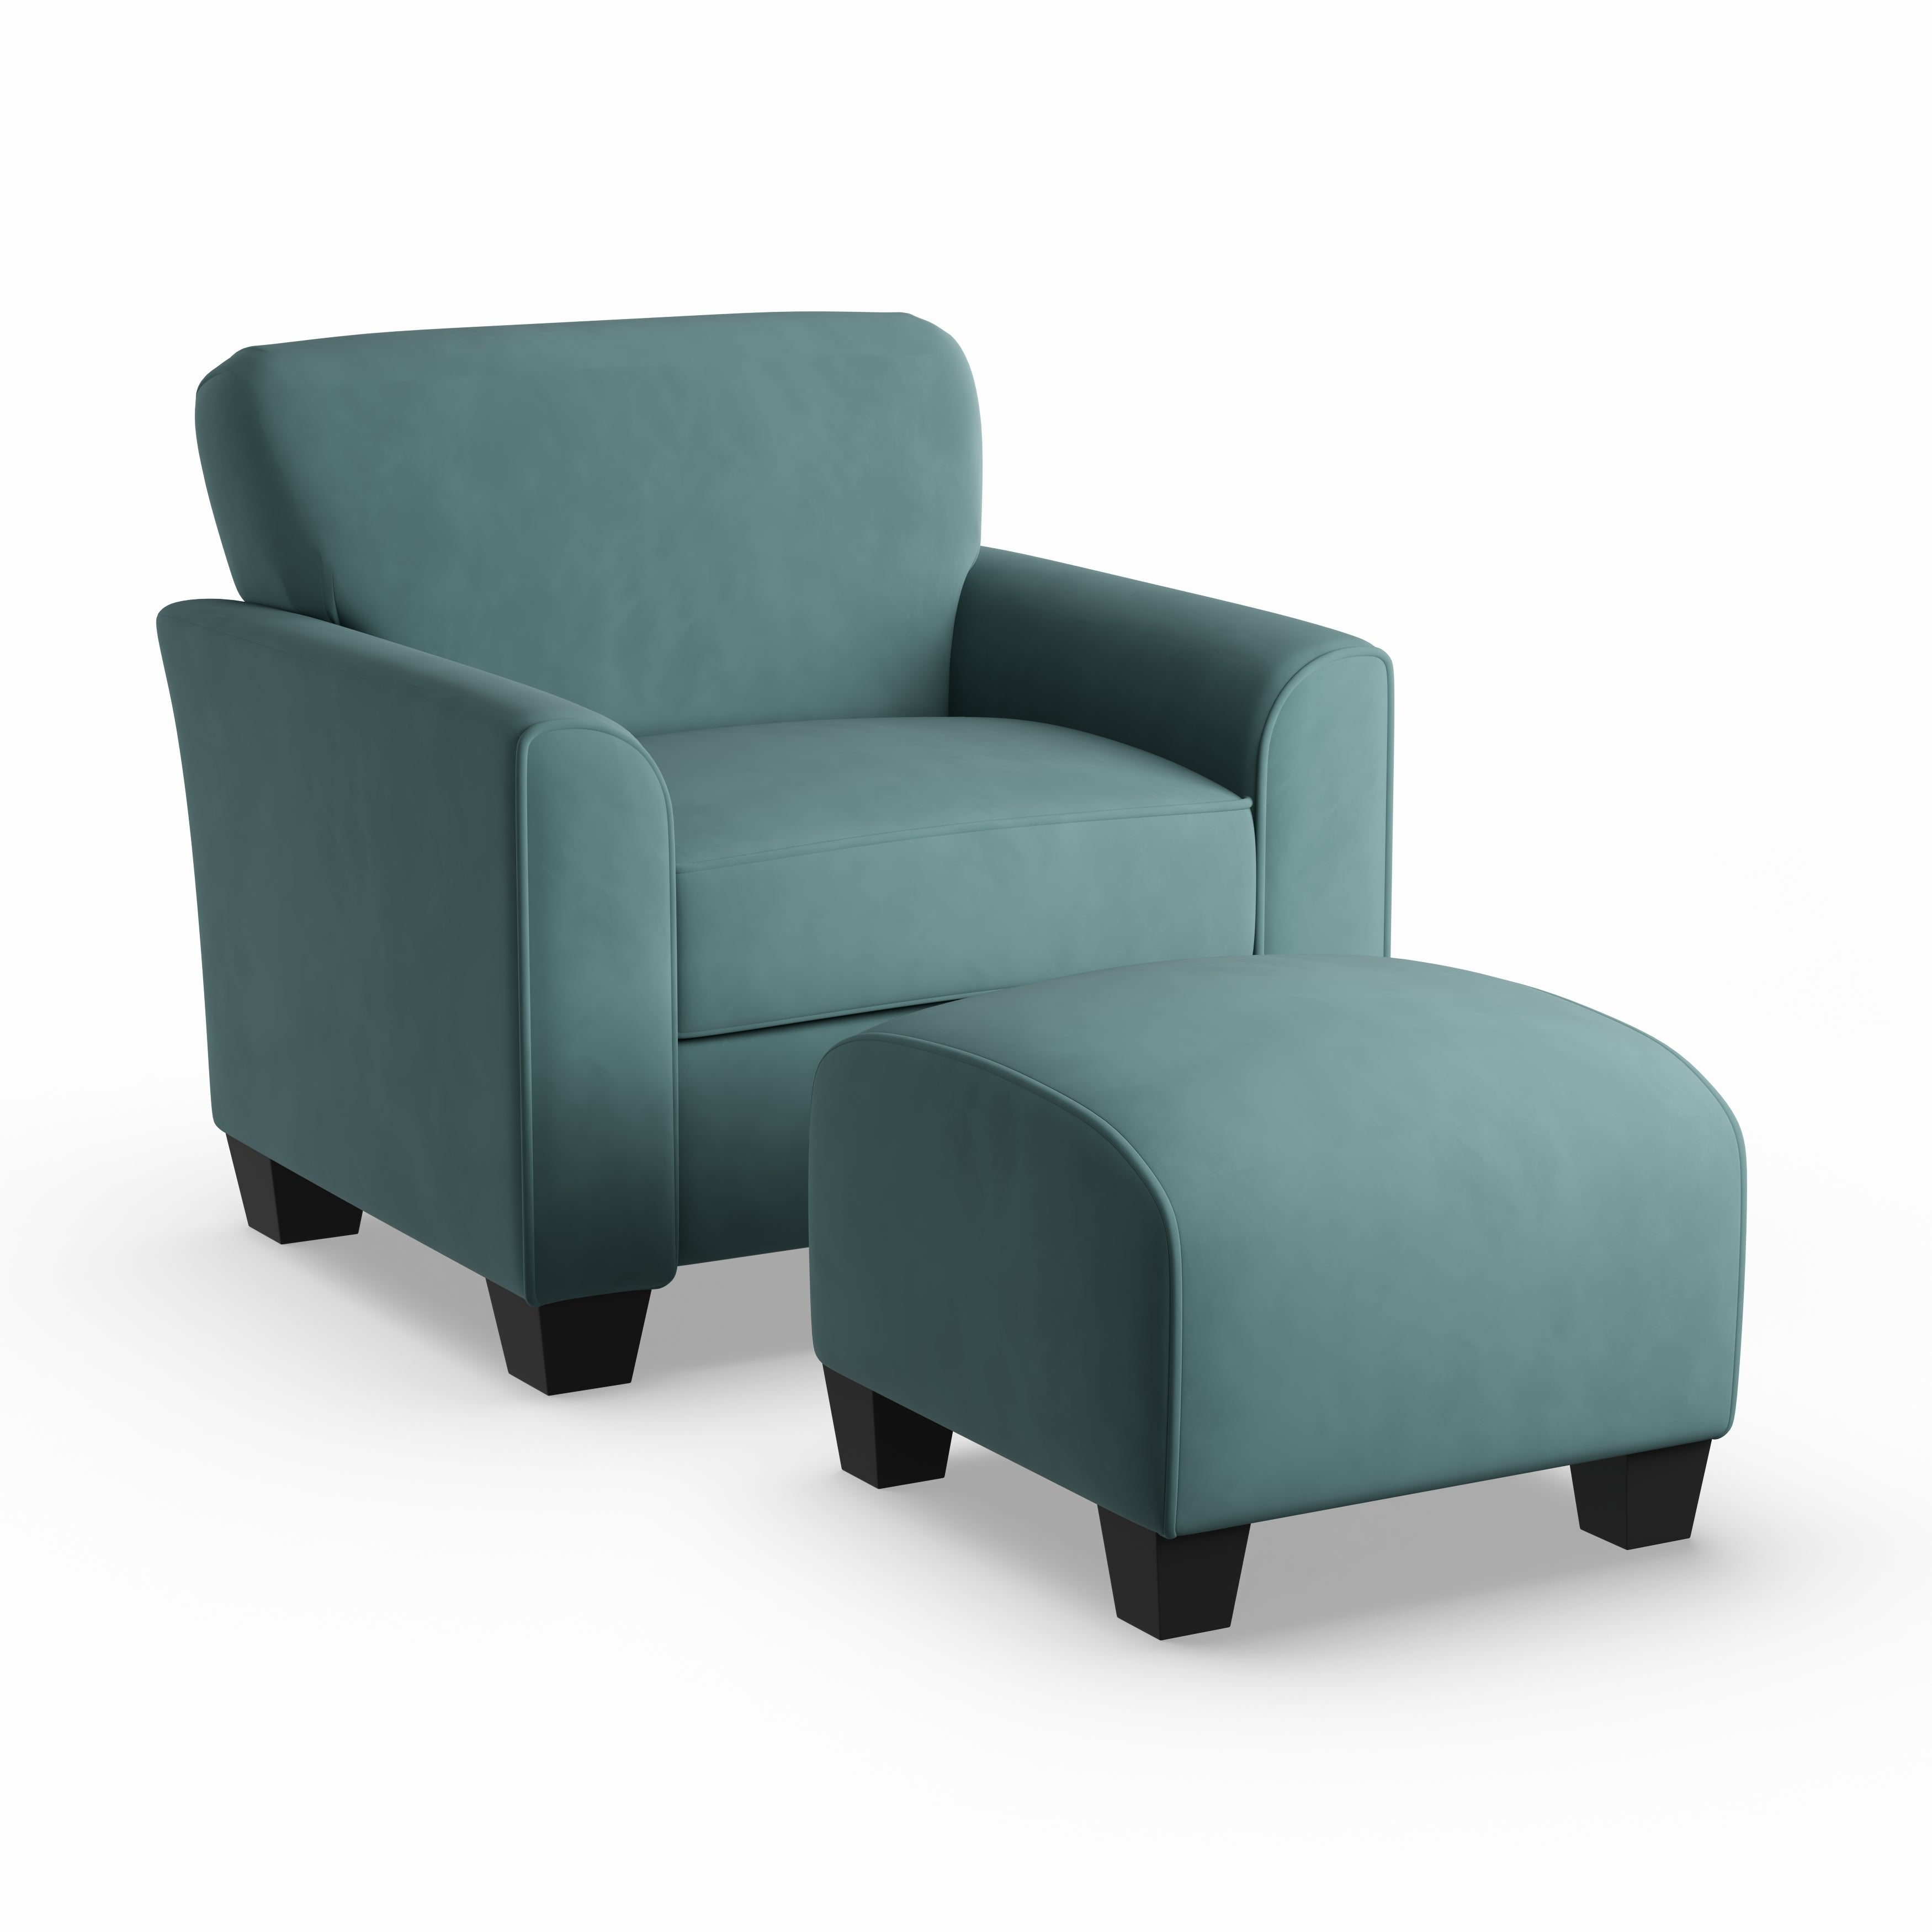 Shop Porch U0026 Den Kalamath Turquoise Velvet Arm Chair And Ottoman   On Sale    Free Shipping Today   Overstock   20689378